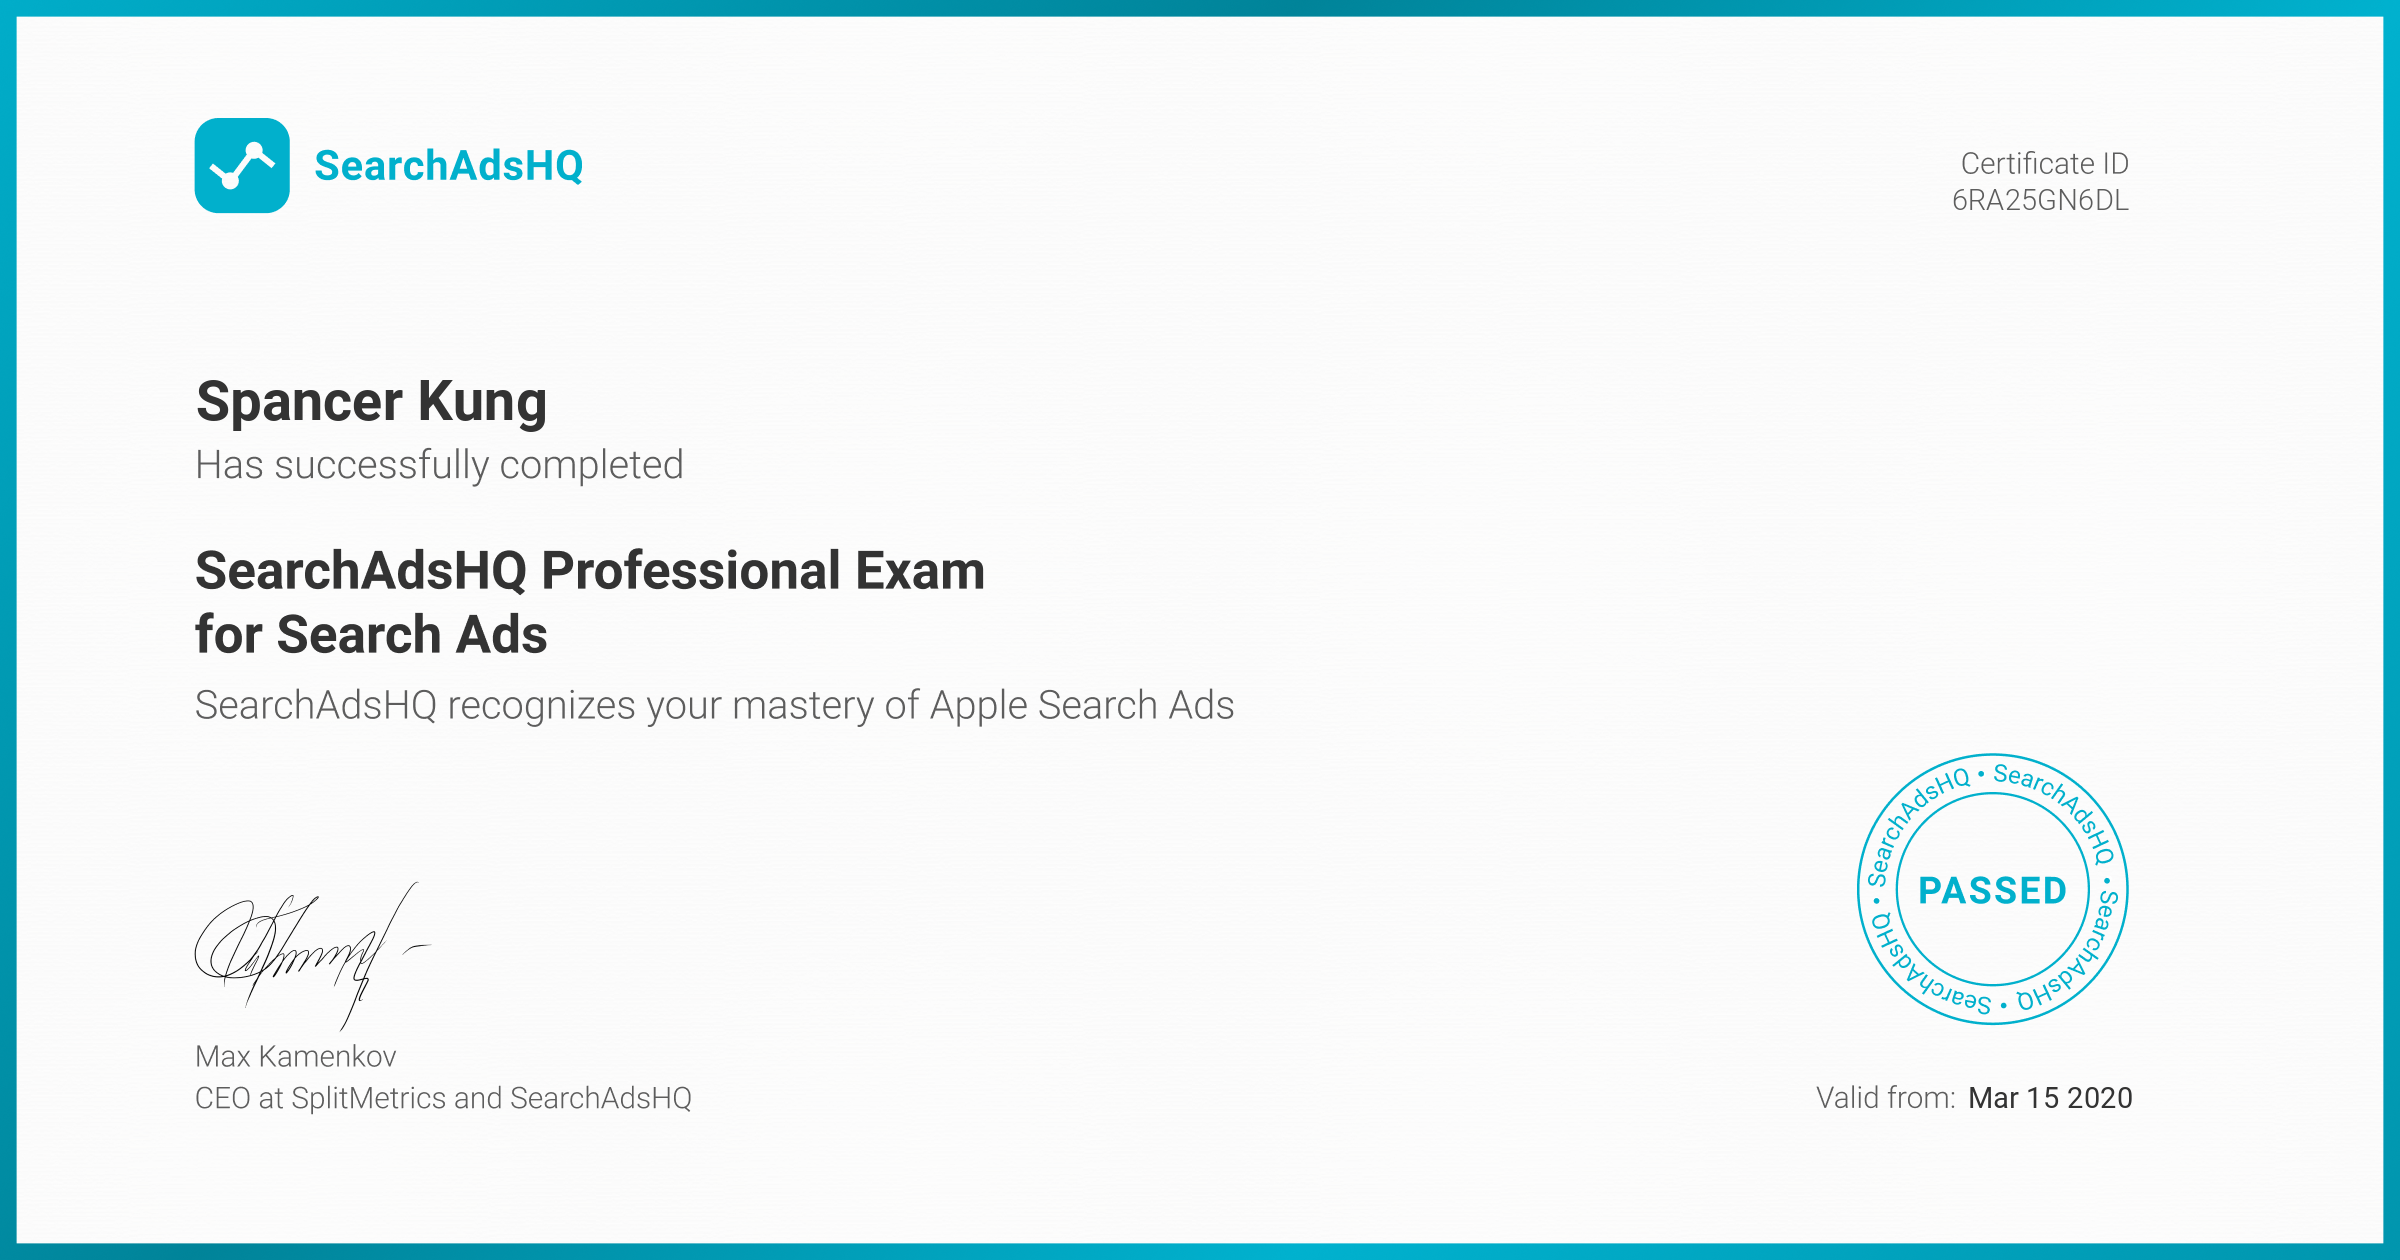 Certificate for Spancer Kung | SearchAdsHQ Professional Exam for Search Ads